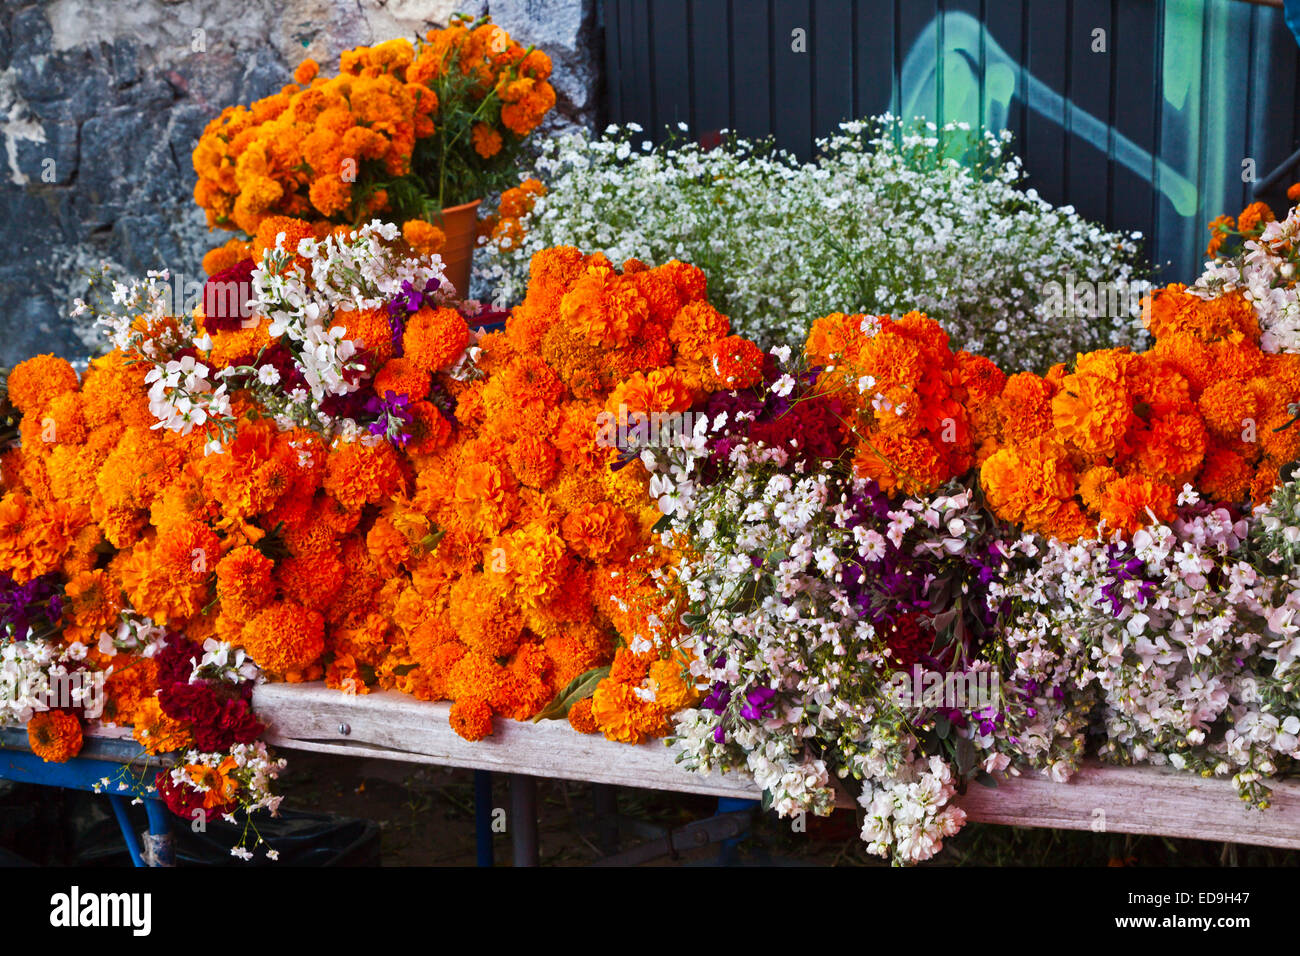 FLOWERS for sale during DAY OF THE DEAD -  SAN MIGUEL DE ALLENDE, MEXICO - Stock Image